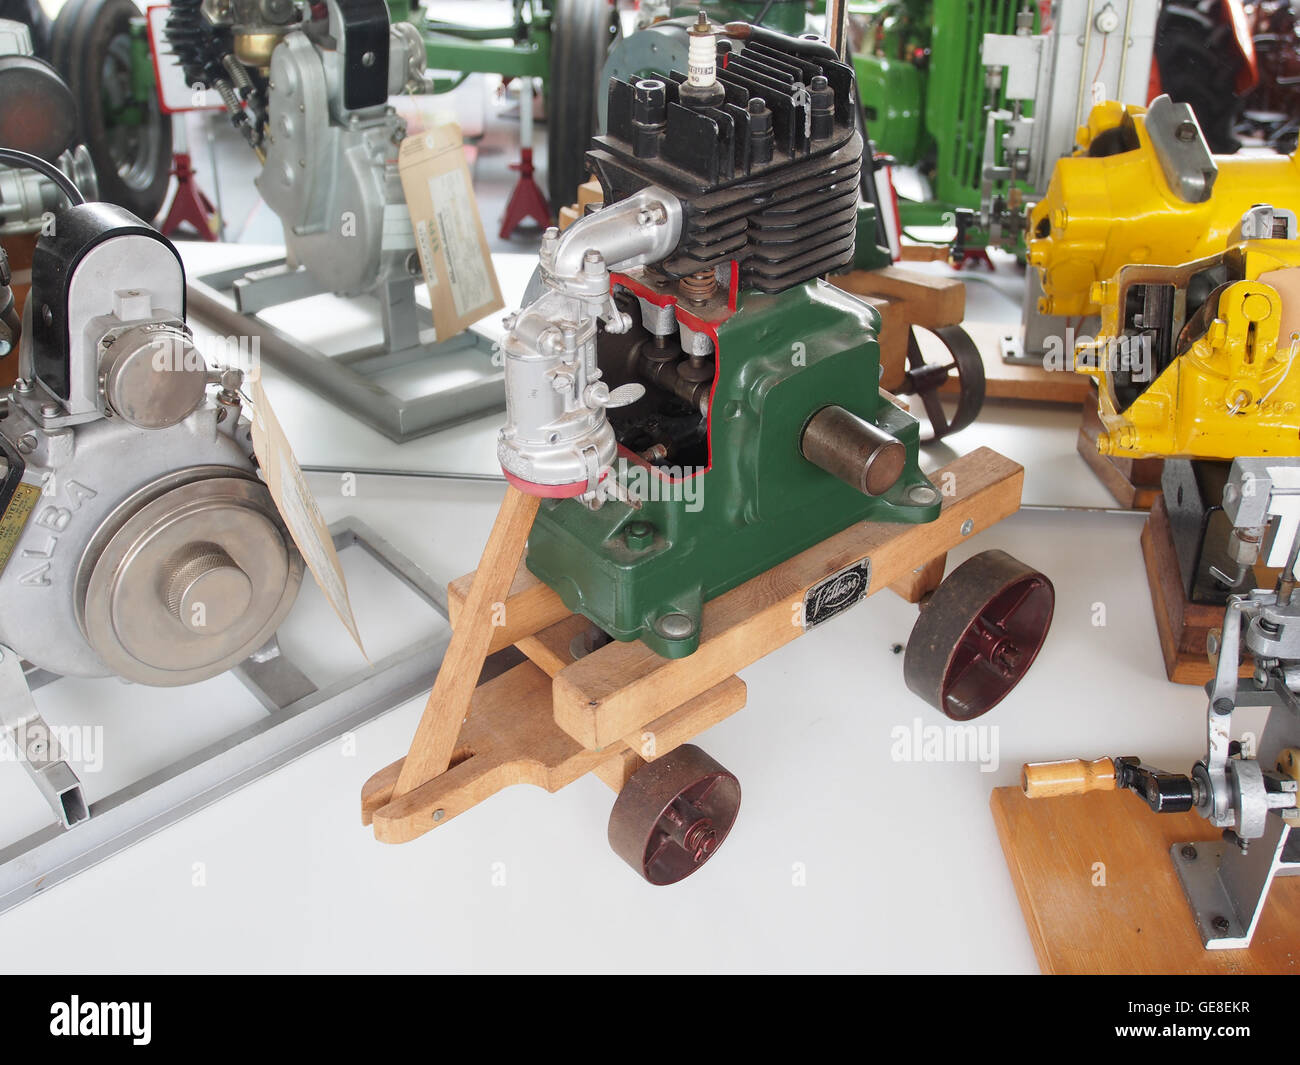 Villiers Engine Stock Photos & Villiers Engine Stock Images - Alamy